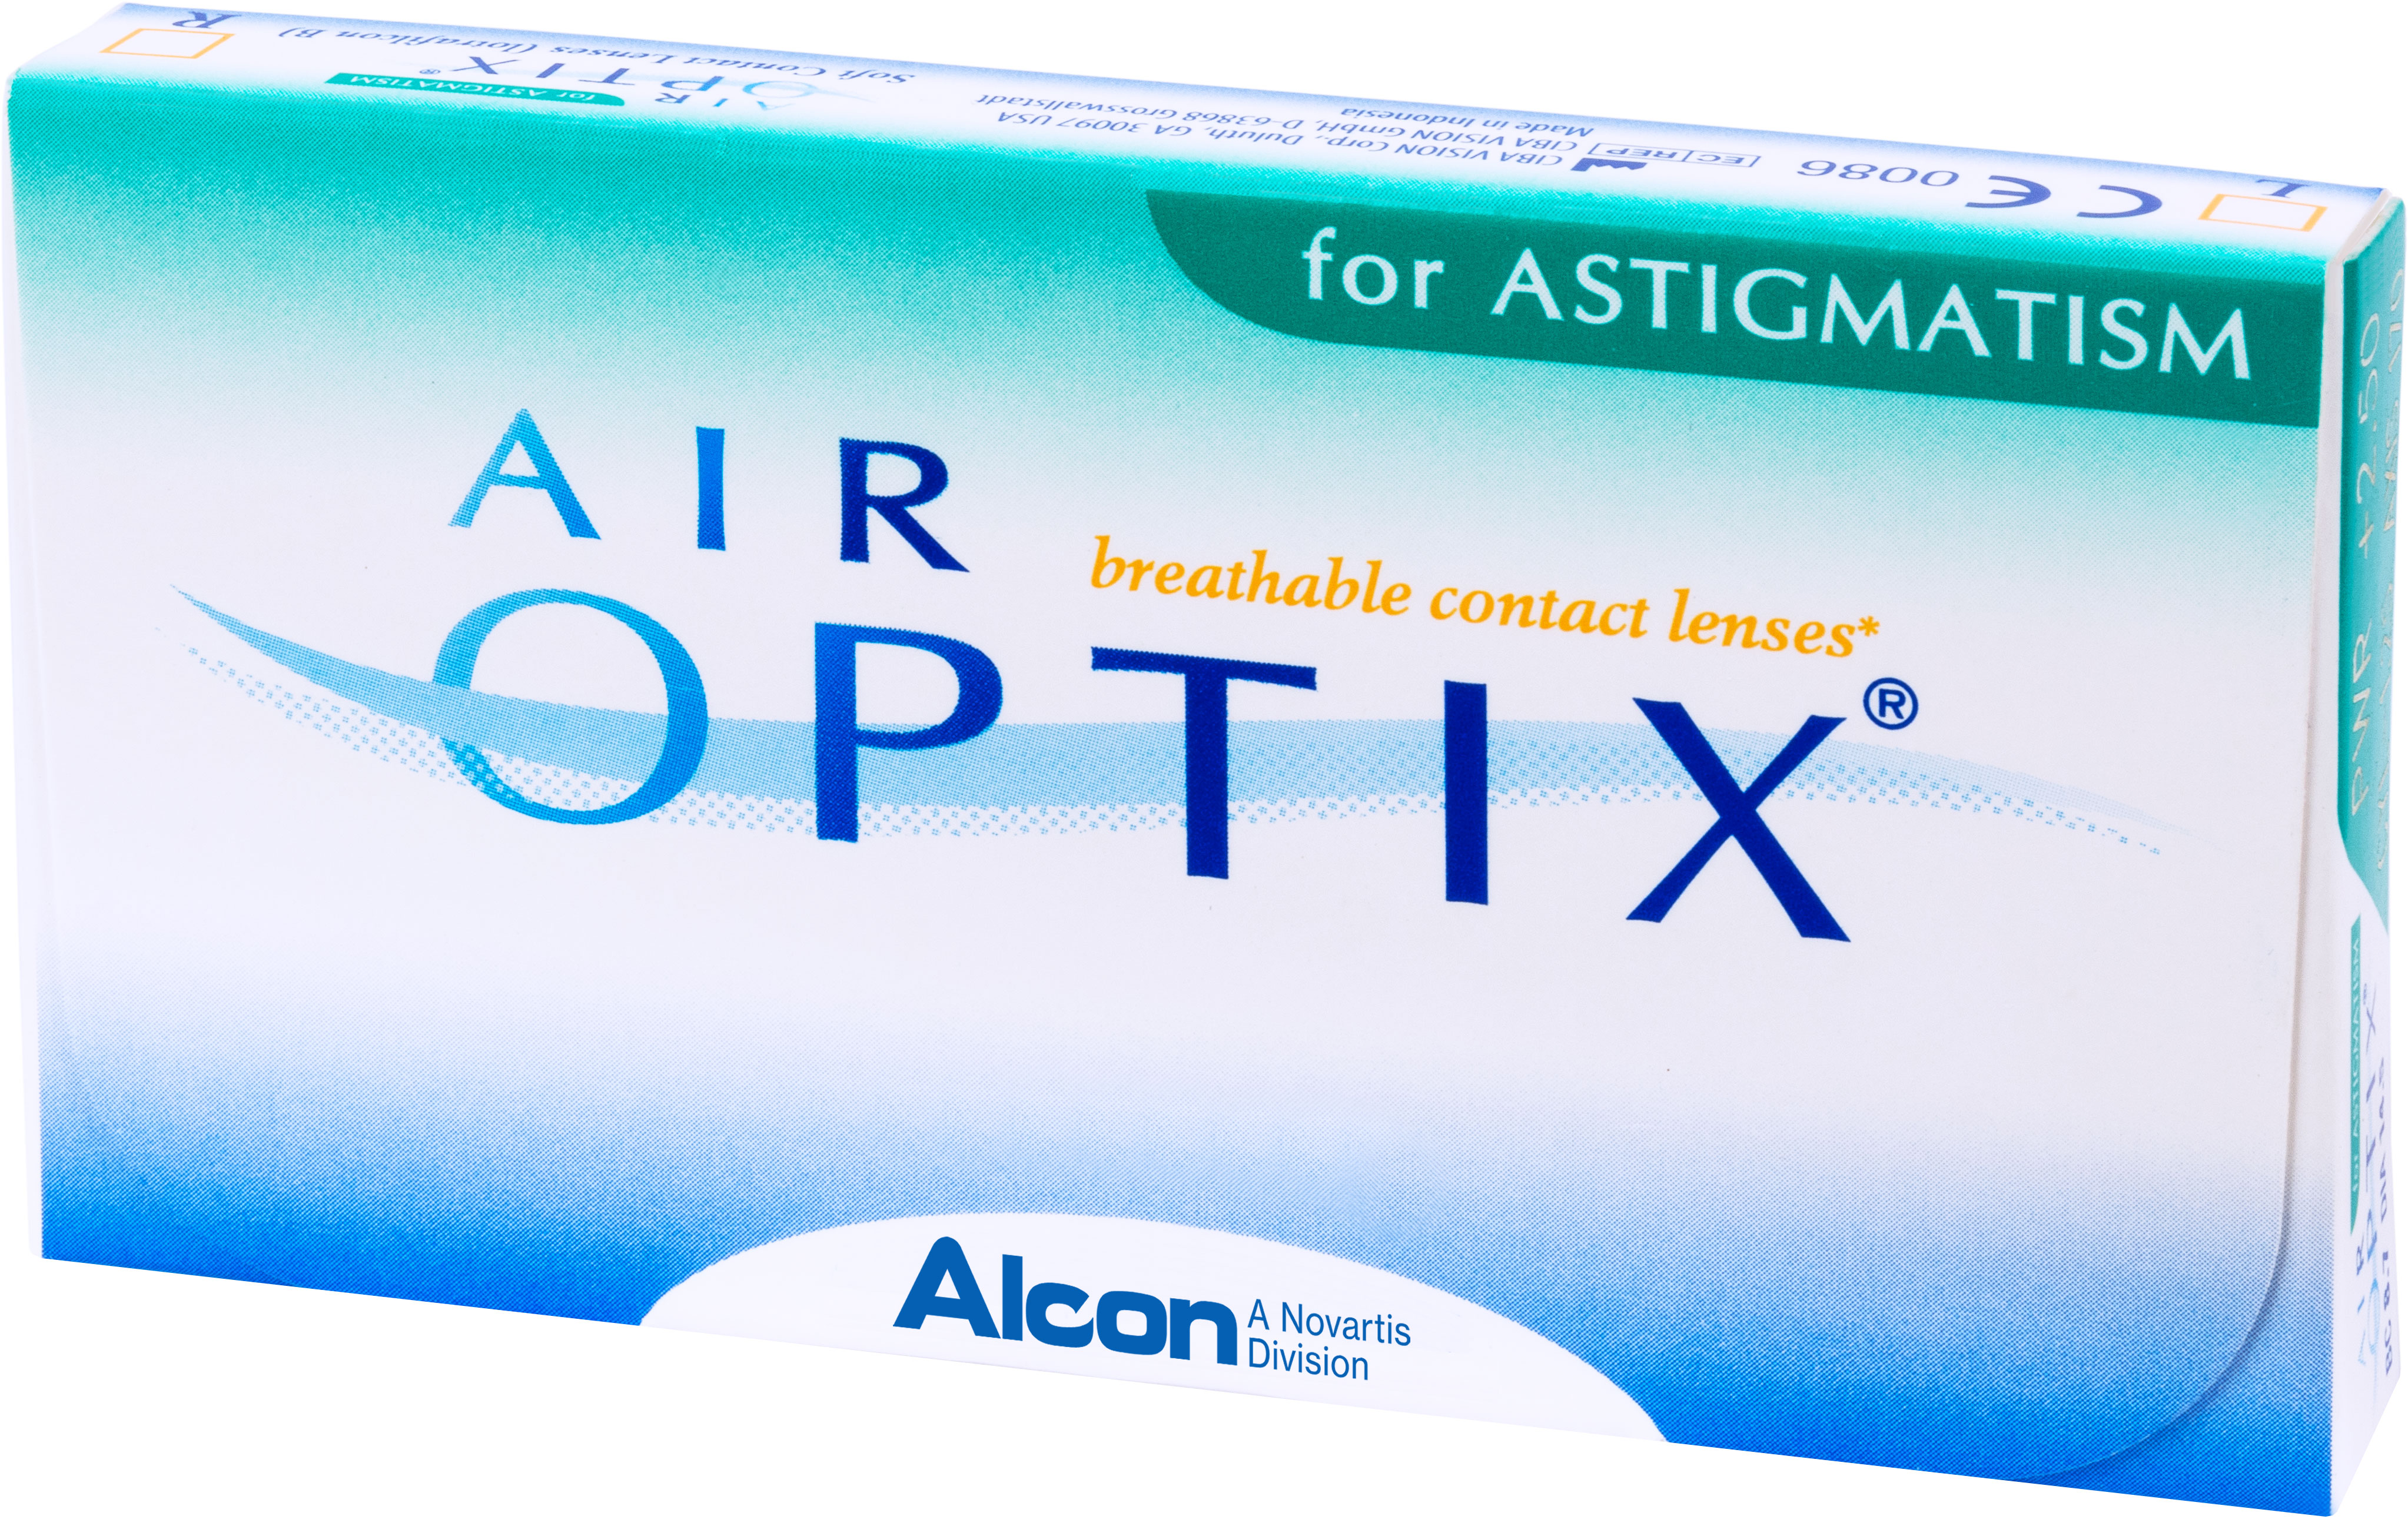 Аlcon контактные линзы Air Optix for Astigmatism 3pk /BC 8.7/DIA14.5/PWR -2.50/CYL -1.75/AXIS 160100040967with Hydraclear